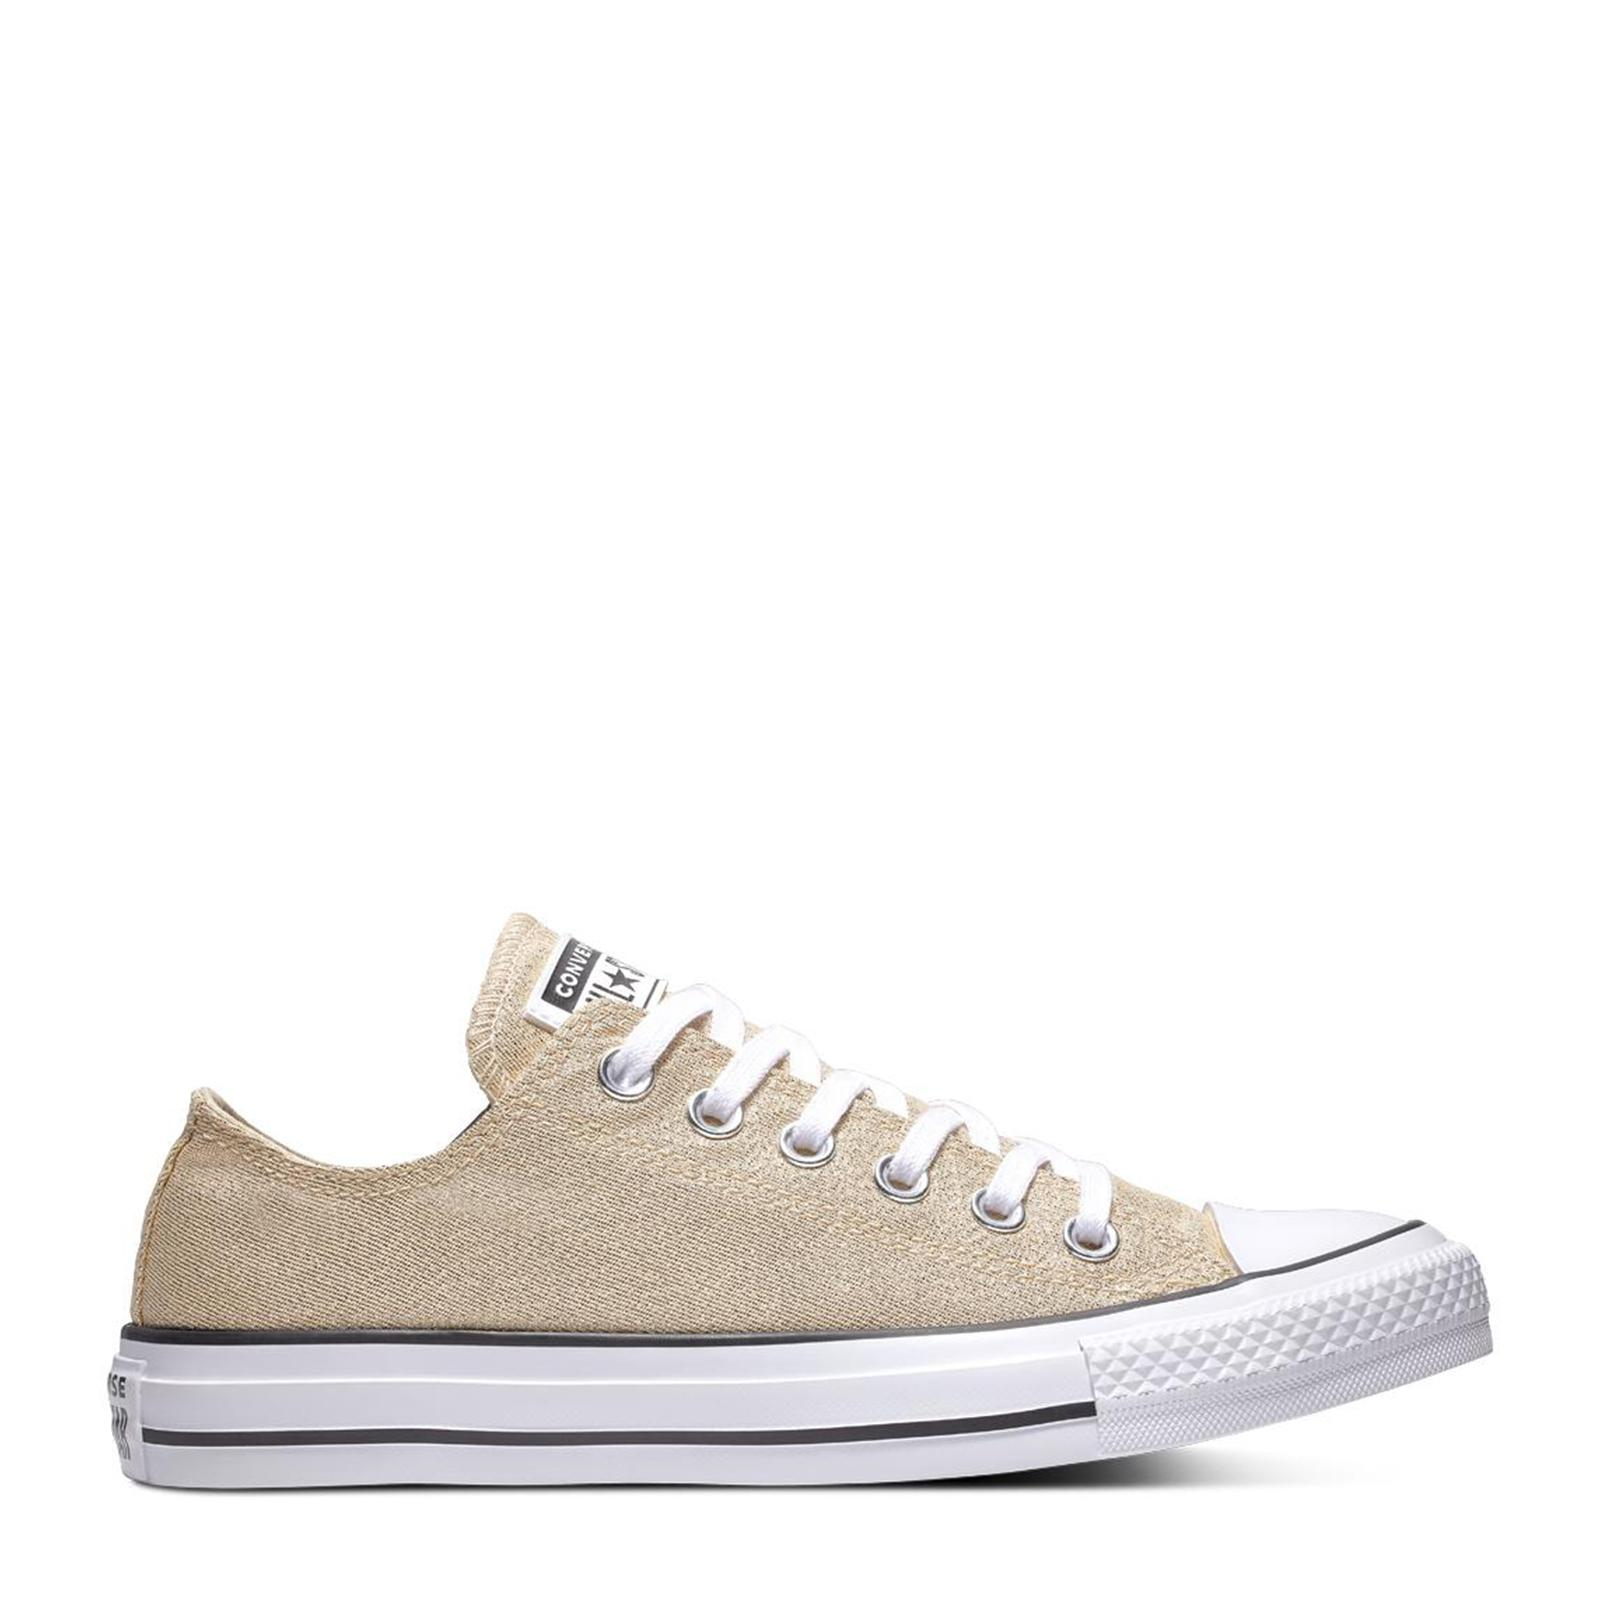 Converse Chuck Taylor Ox Particle BeigeParticle BeigeGold | Womens Pink Converse Chuck Taylor